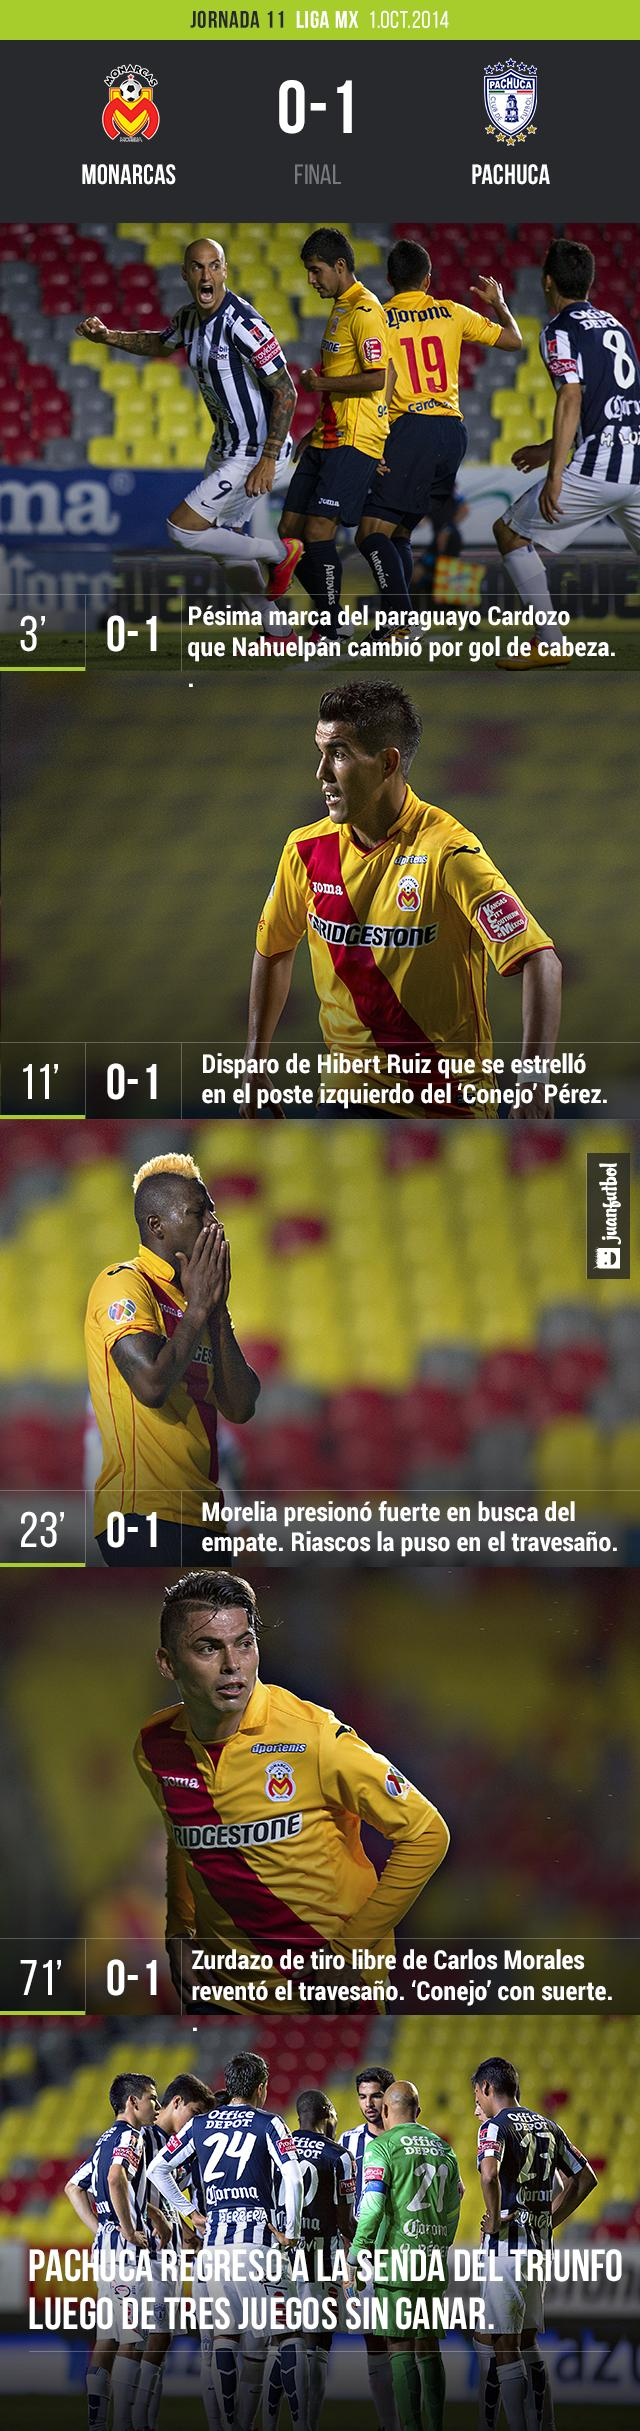 Monarcas vs. Pachuca